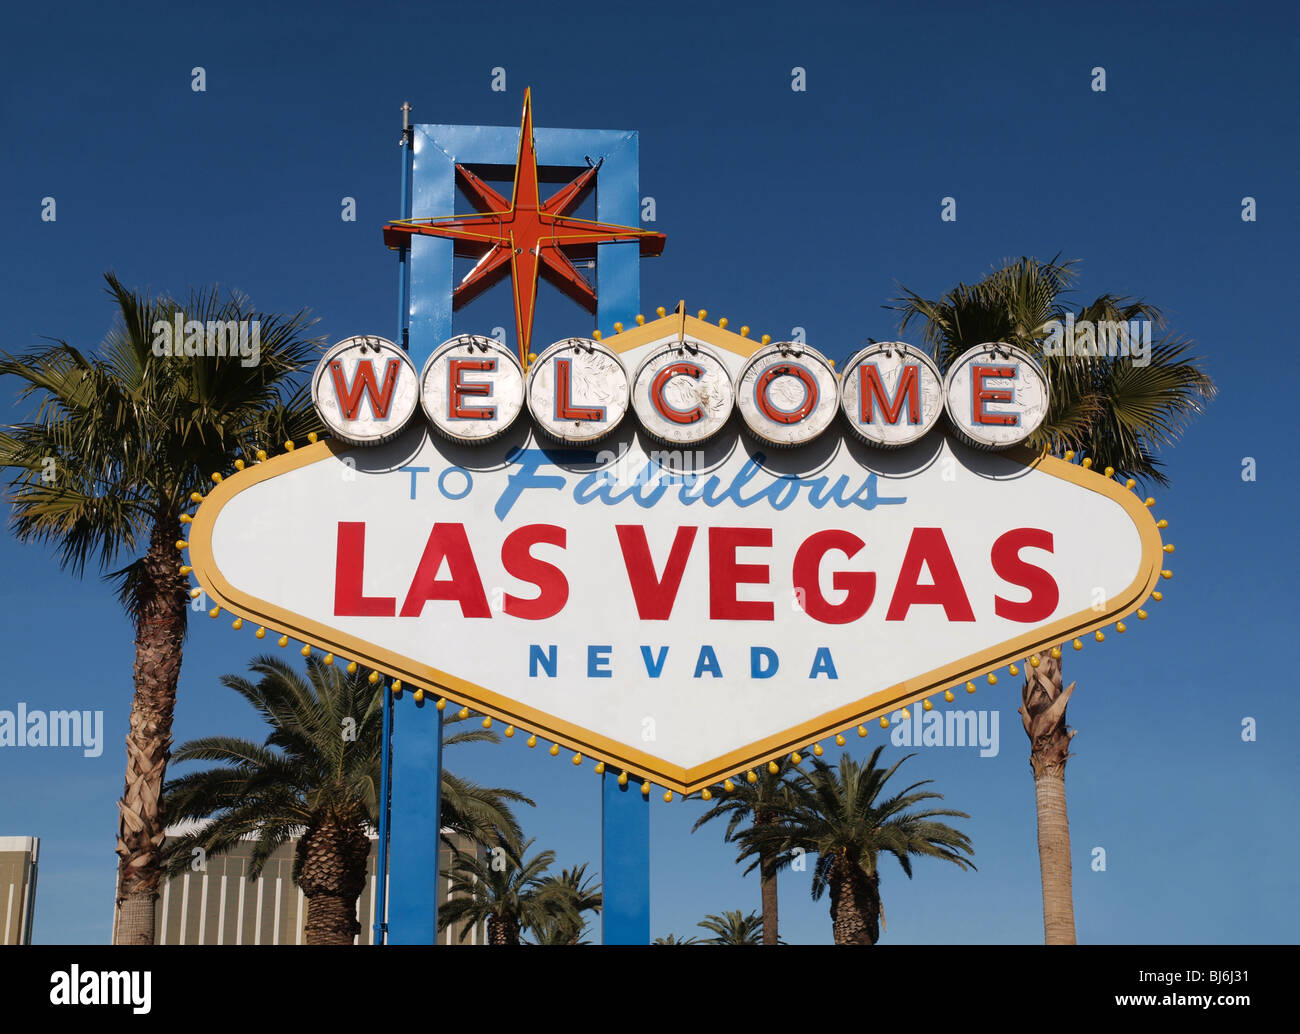 Stock footage welcome to fabulous las vegas sign with flashing lights - Fabulous Las Vegas Nevada Welcome Sign With Palm Trees Stock Image